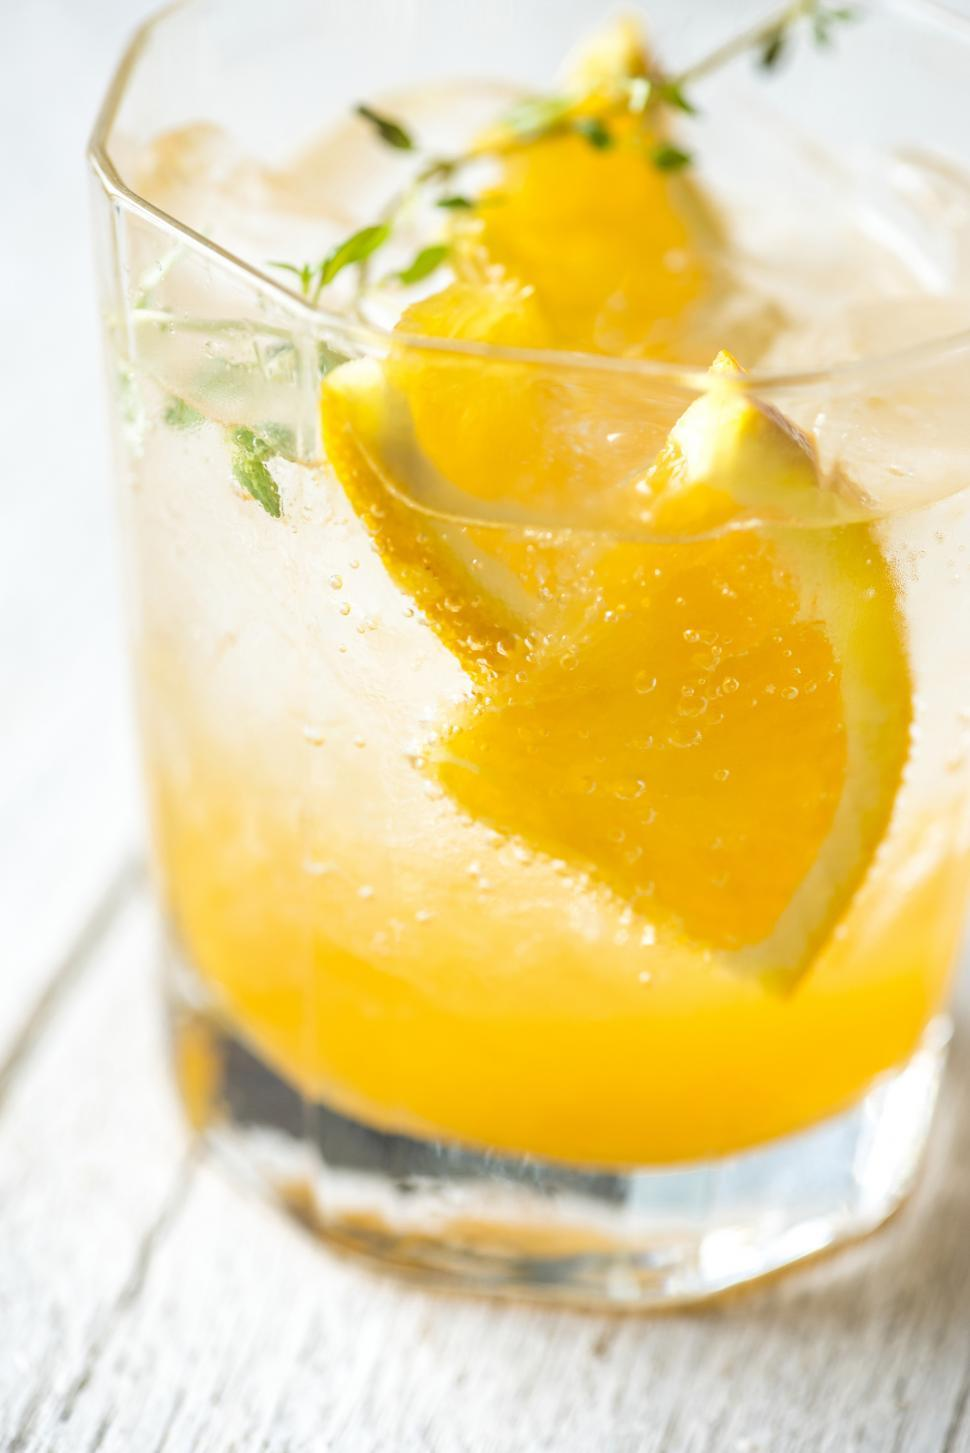 Download Free Stock HD Photo of Close up of fresh beverage in a glass garnished with orange slices Online